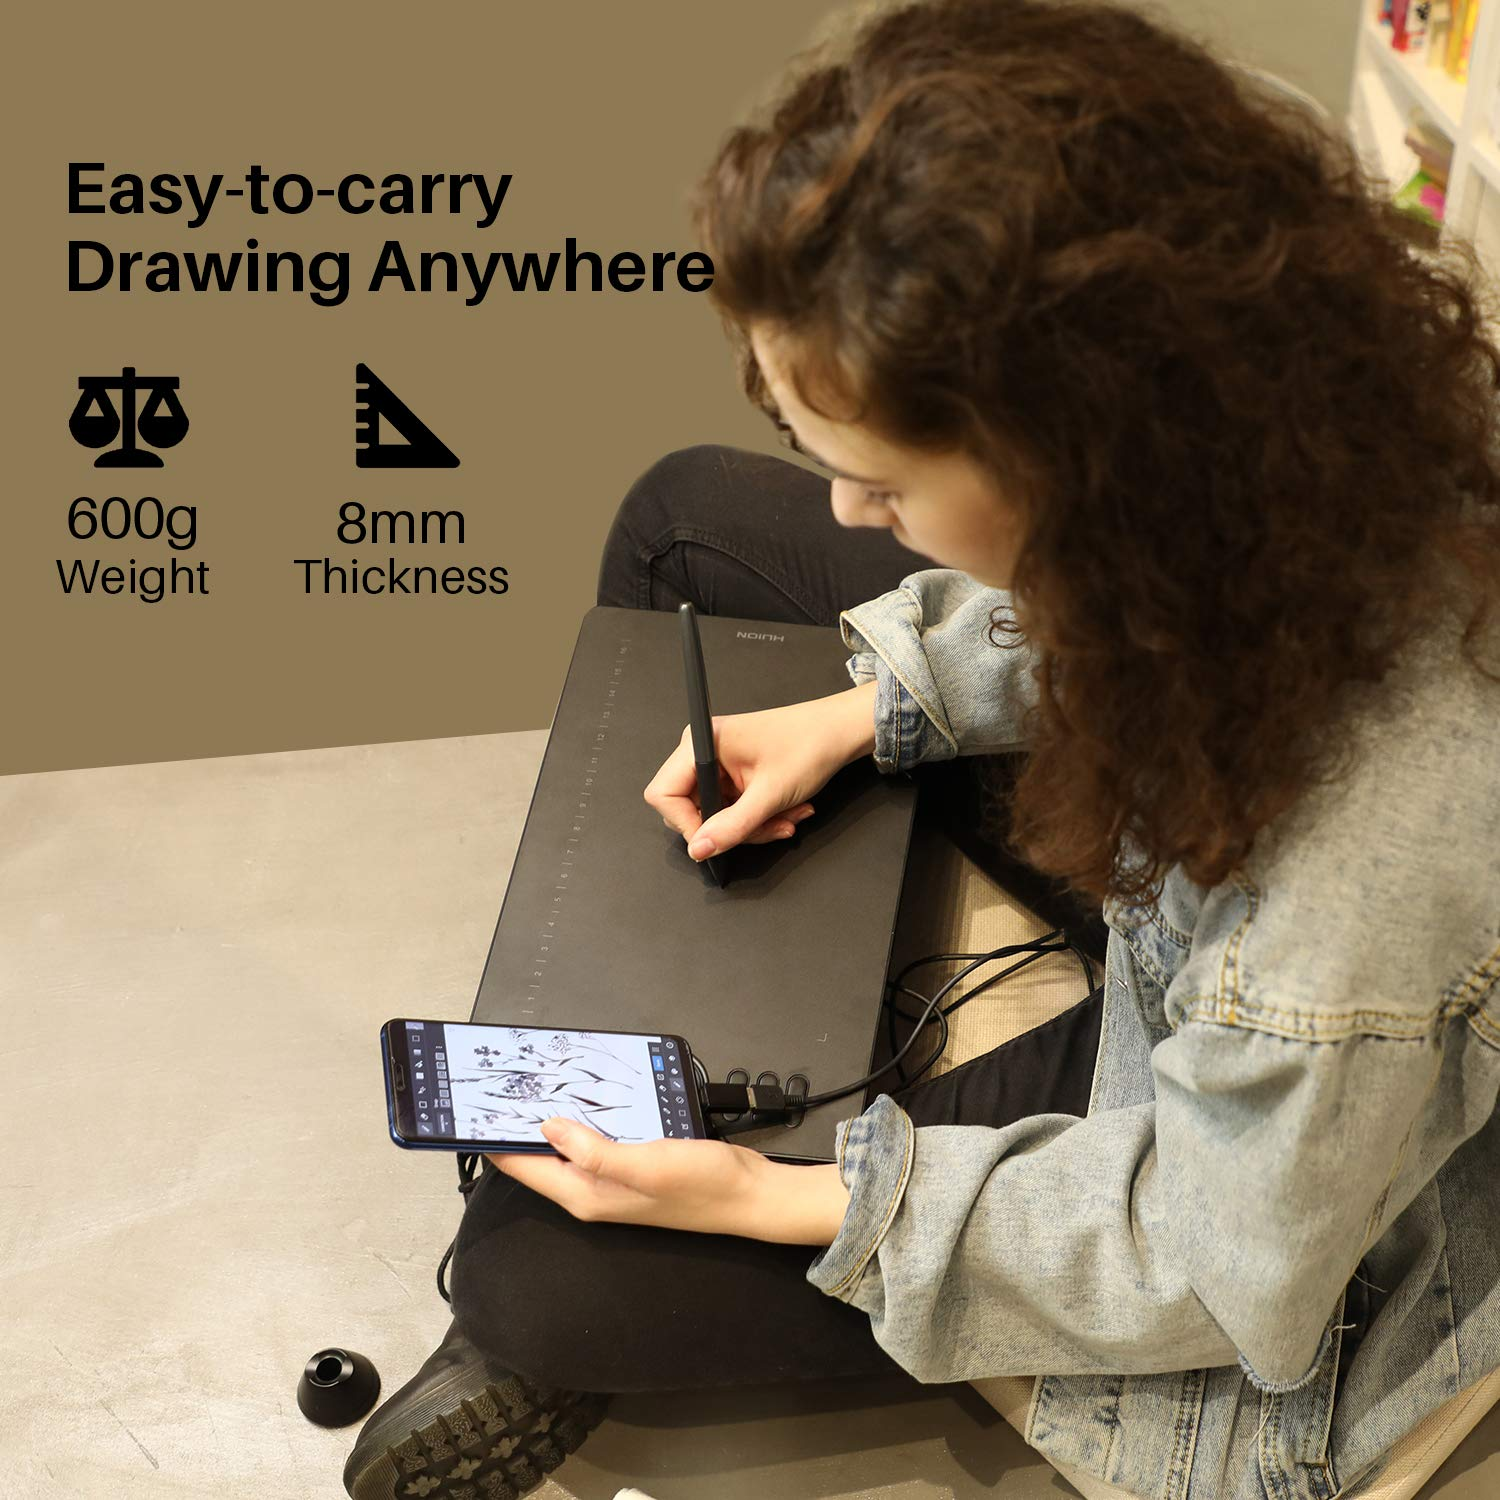 PC or Android Mobile 8192 Pressure Sensitivity Huion HS610 Graphics Drawing Tablet with Touch Ring and 28 Express Keys Compatible with Mac Battery-Free Stylus